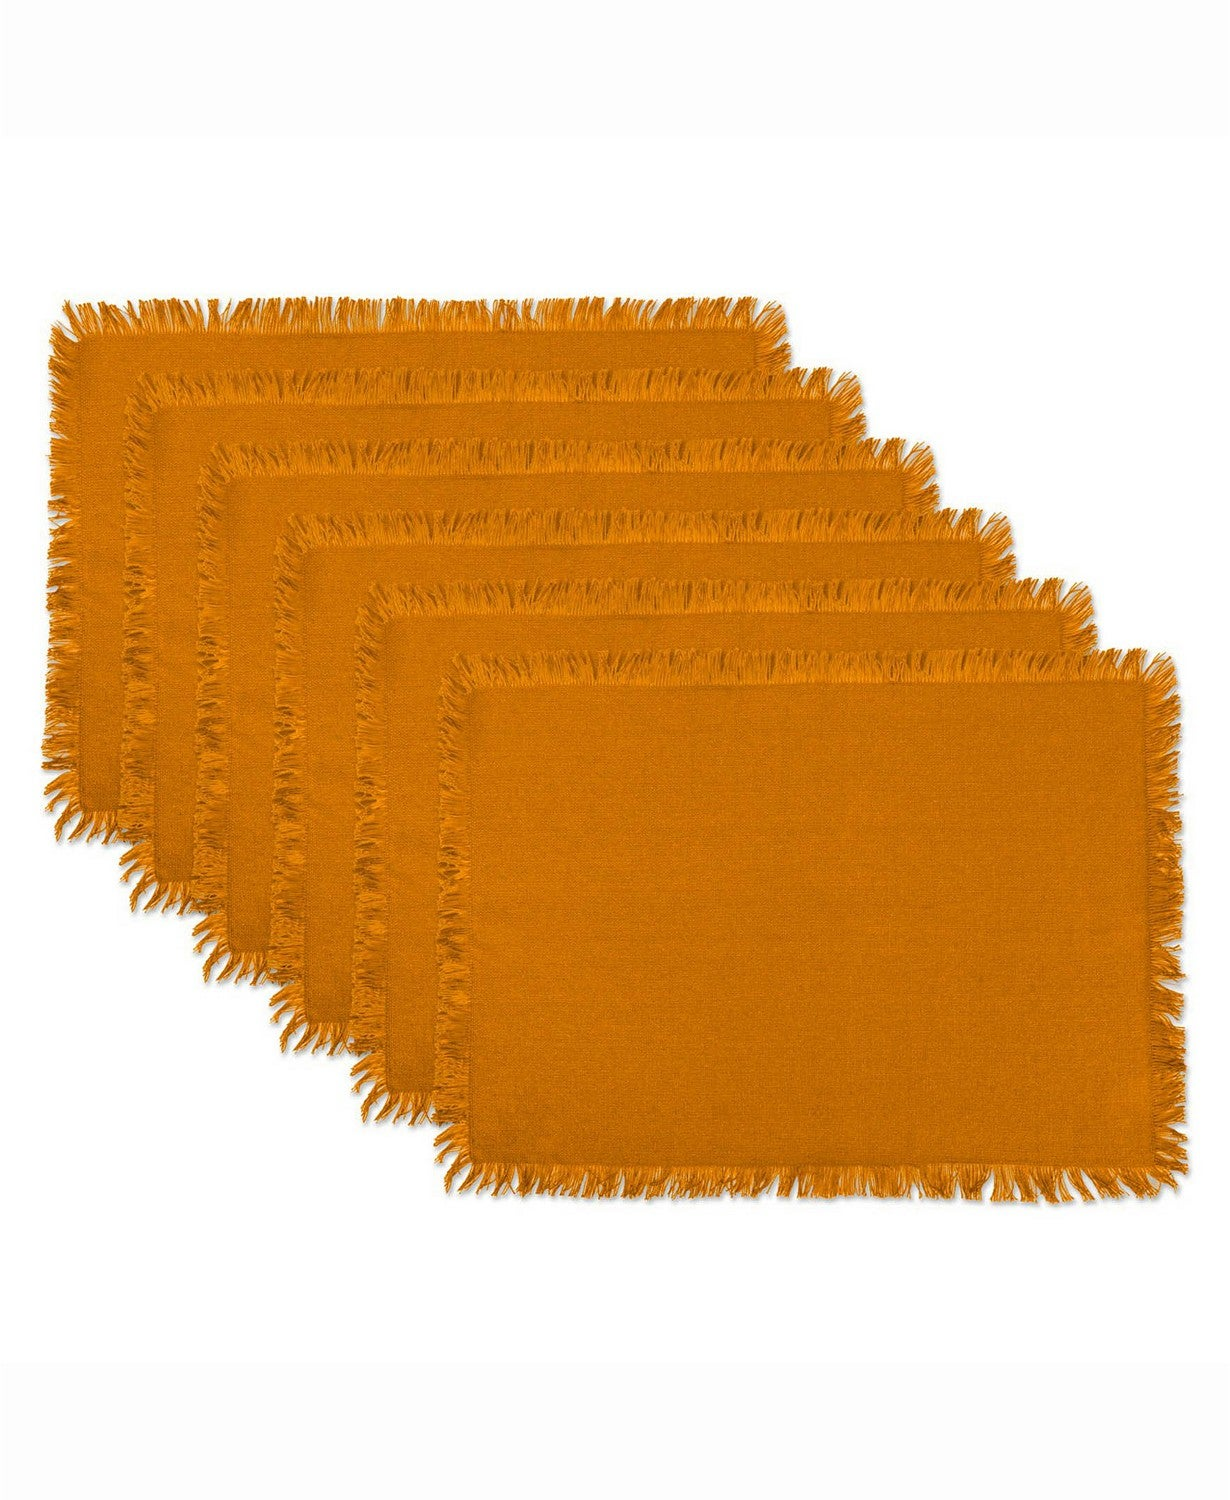 Design Imports Solid Pumpkin Spice Heavyweight Fringed Placemat Set of 6